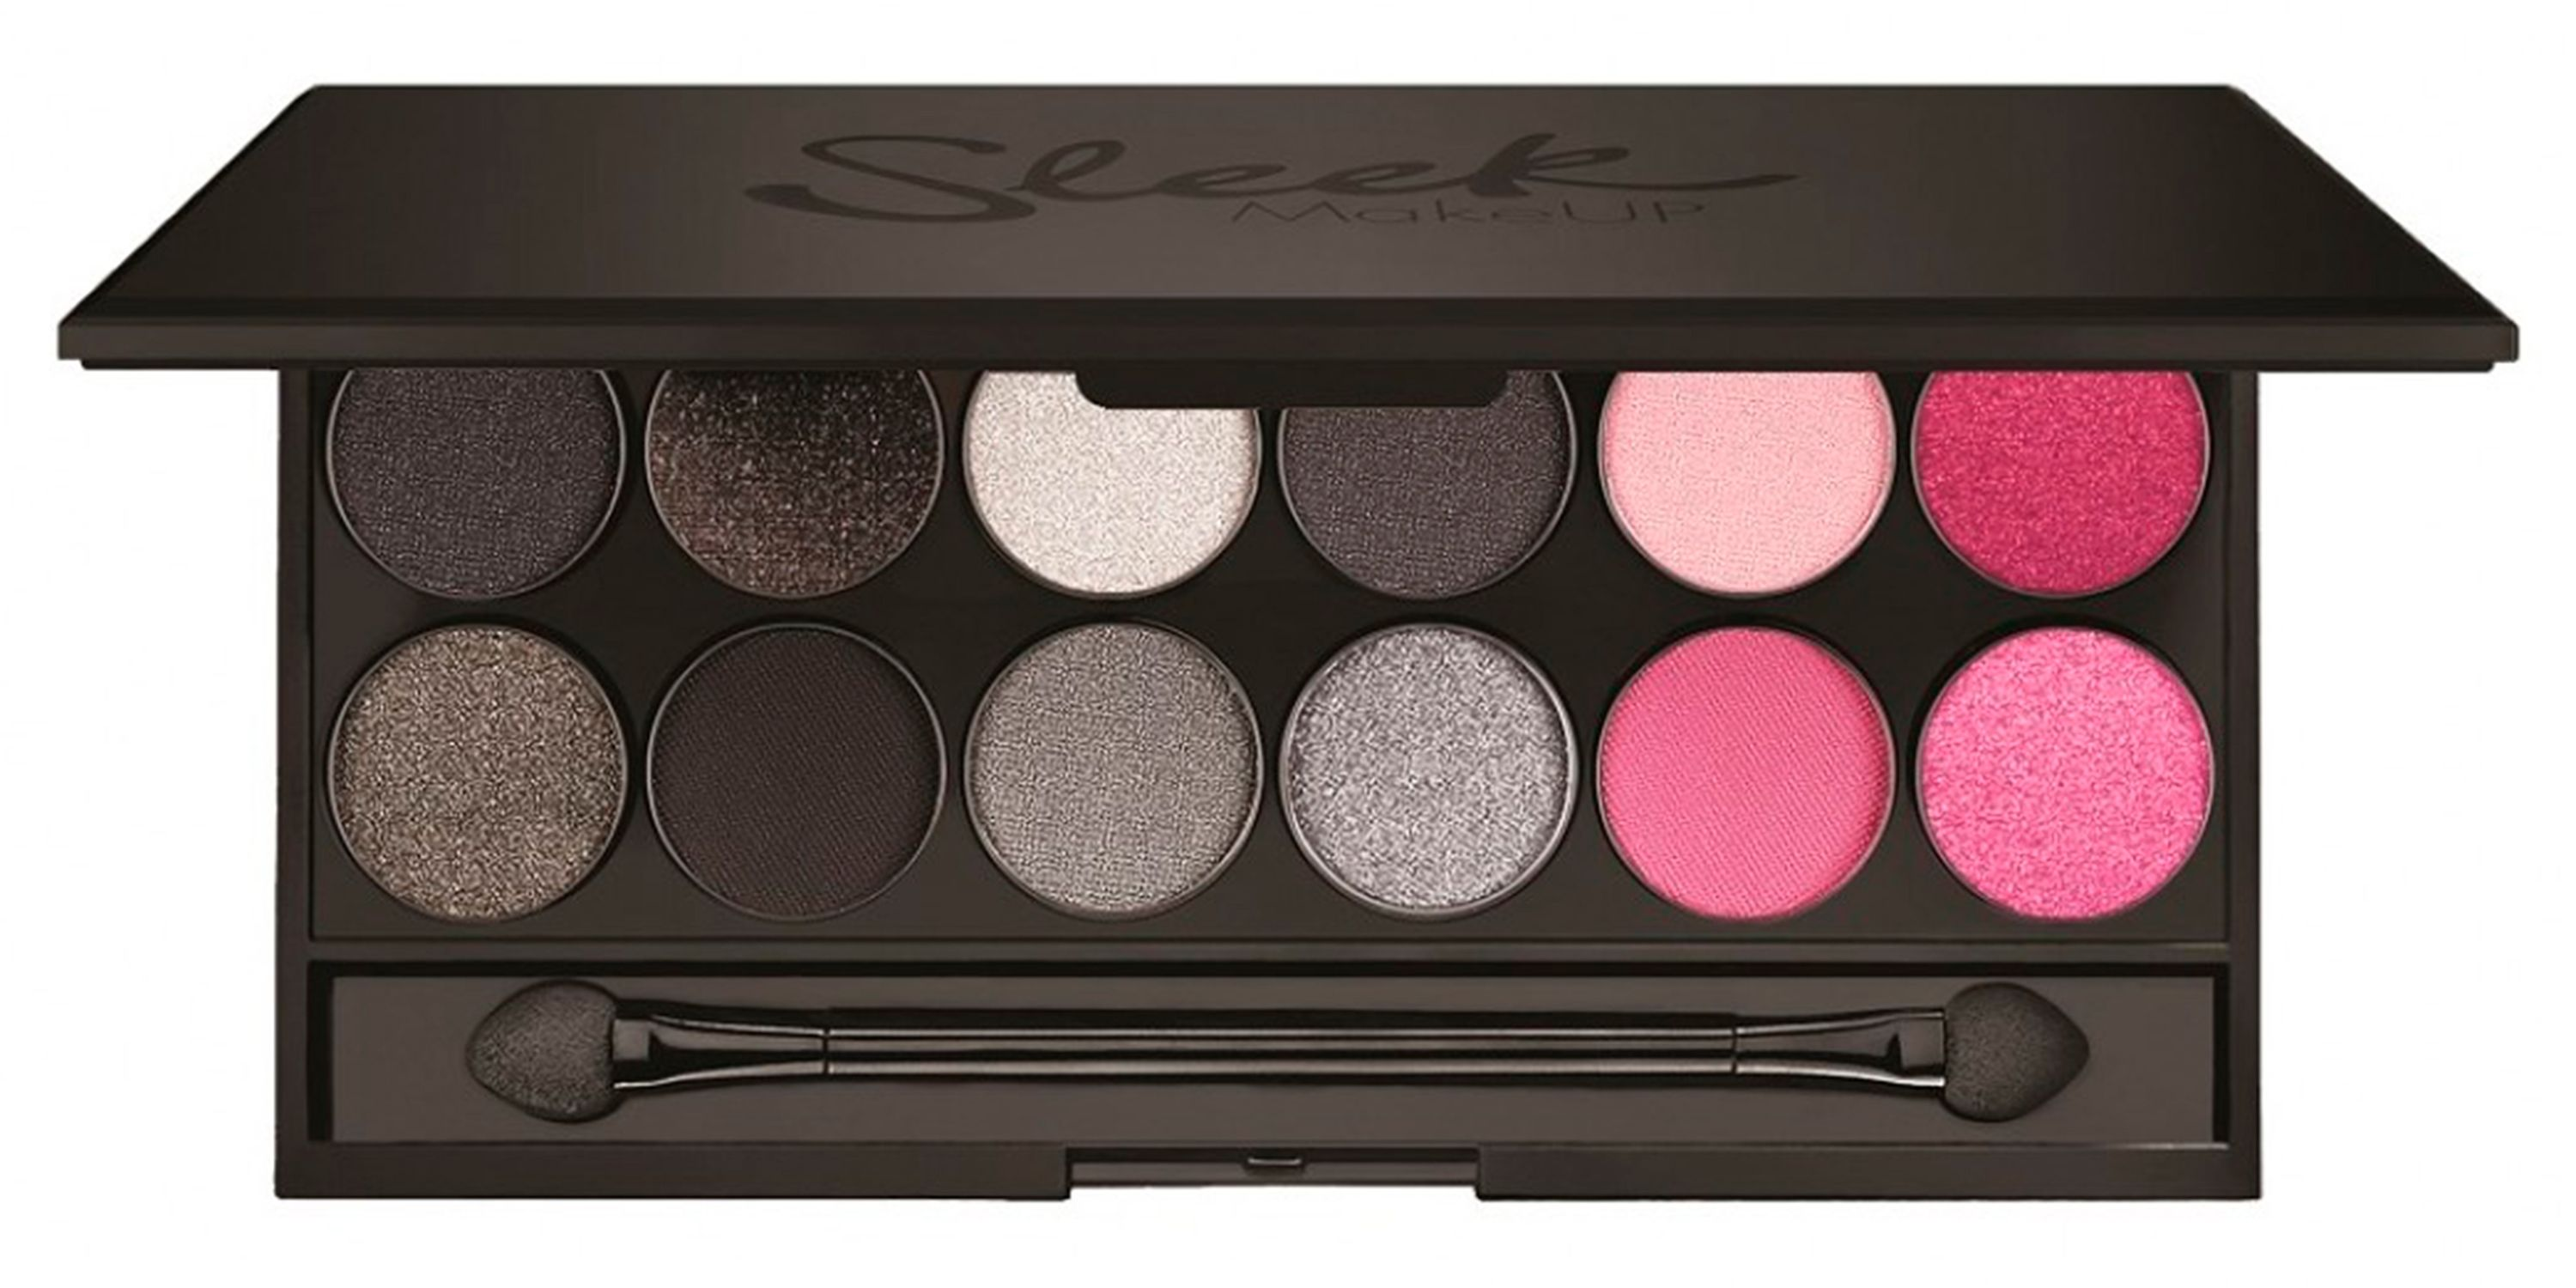 pics The New Eyeshadow Palettes You Need To KnowAbout